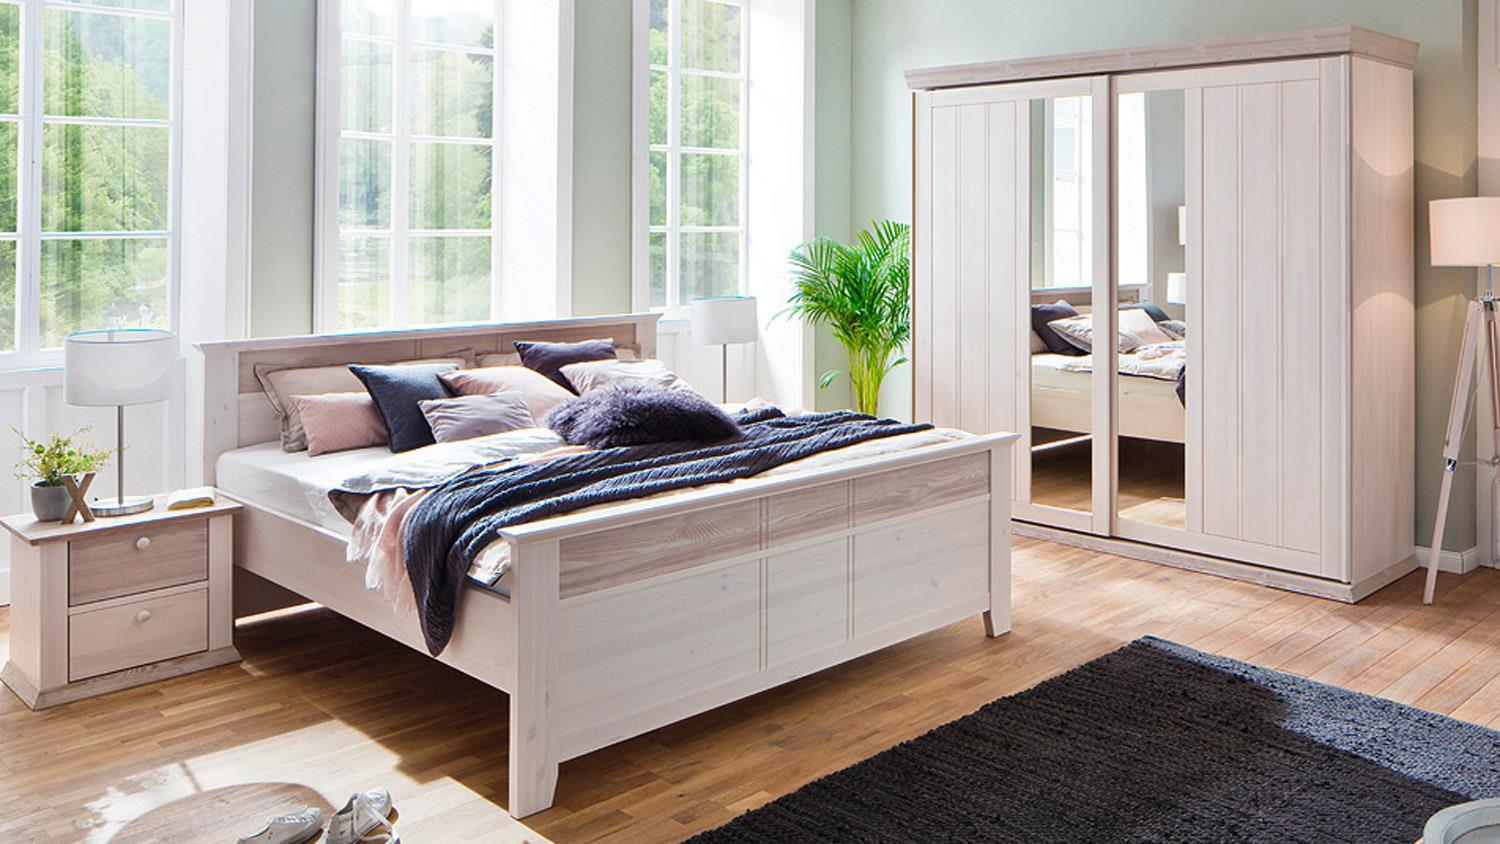 schlafzimmer g teborg 4 tlg set kiefer massiv wei milan mit schweber. Black Bedroom Furniture Sets. Home Design Ideas